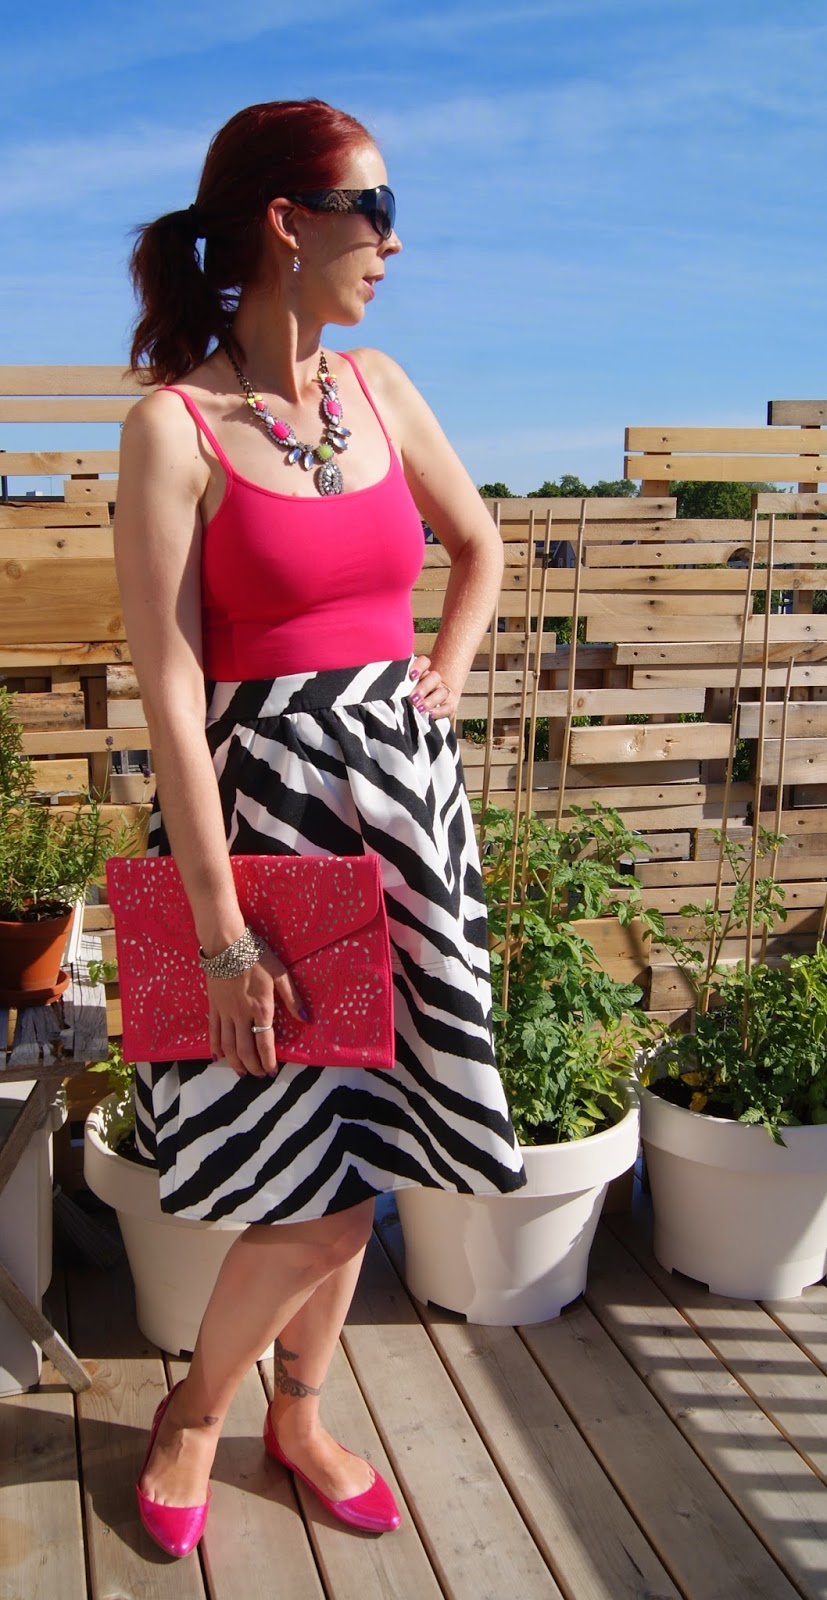 Zebra Print Lady, Express Full Skirt, tank top, Nine West Pink Shoes, Shop For Jayu Statement Necklace, Via by Vieta Clutch from Winners, Fashion, Style, Toronto, Ontario, Canada, Styletips, Melanie.Ps, The Purple Scarf, Pattern, Chic, Summer, Transional,Outfit, Accessories, Pretty, Fabfound